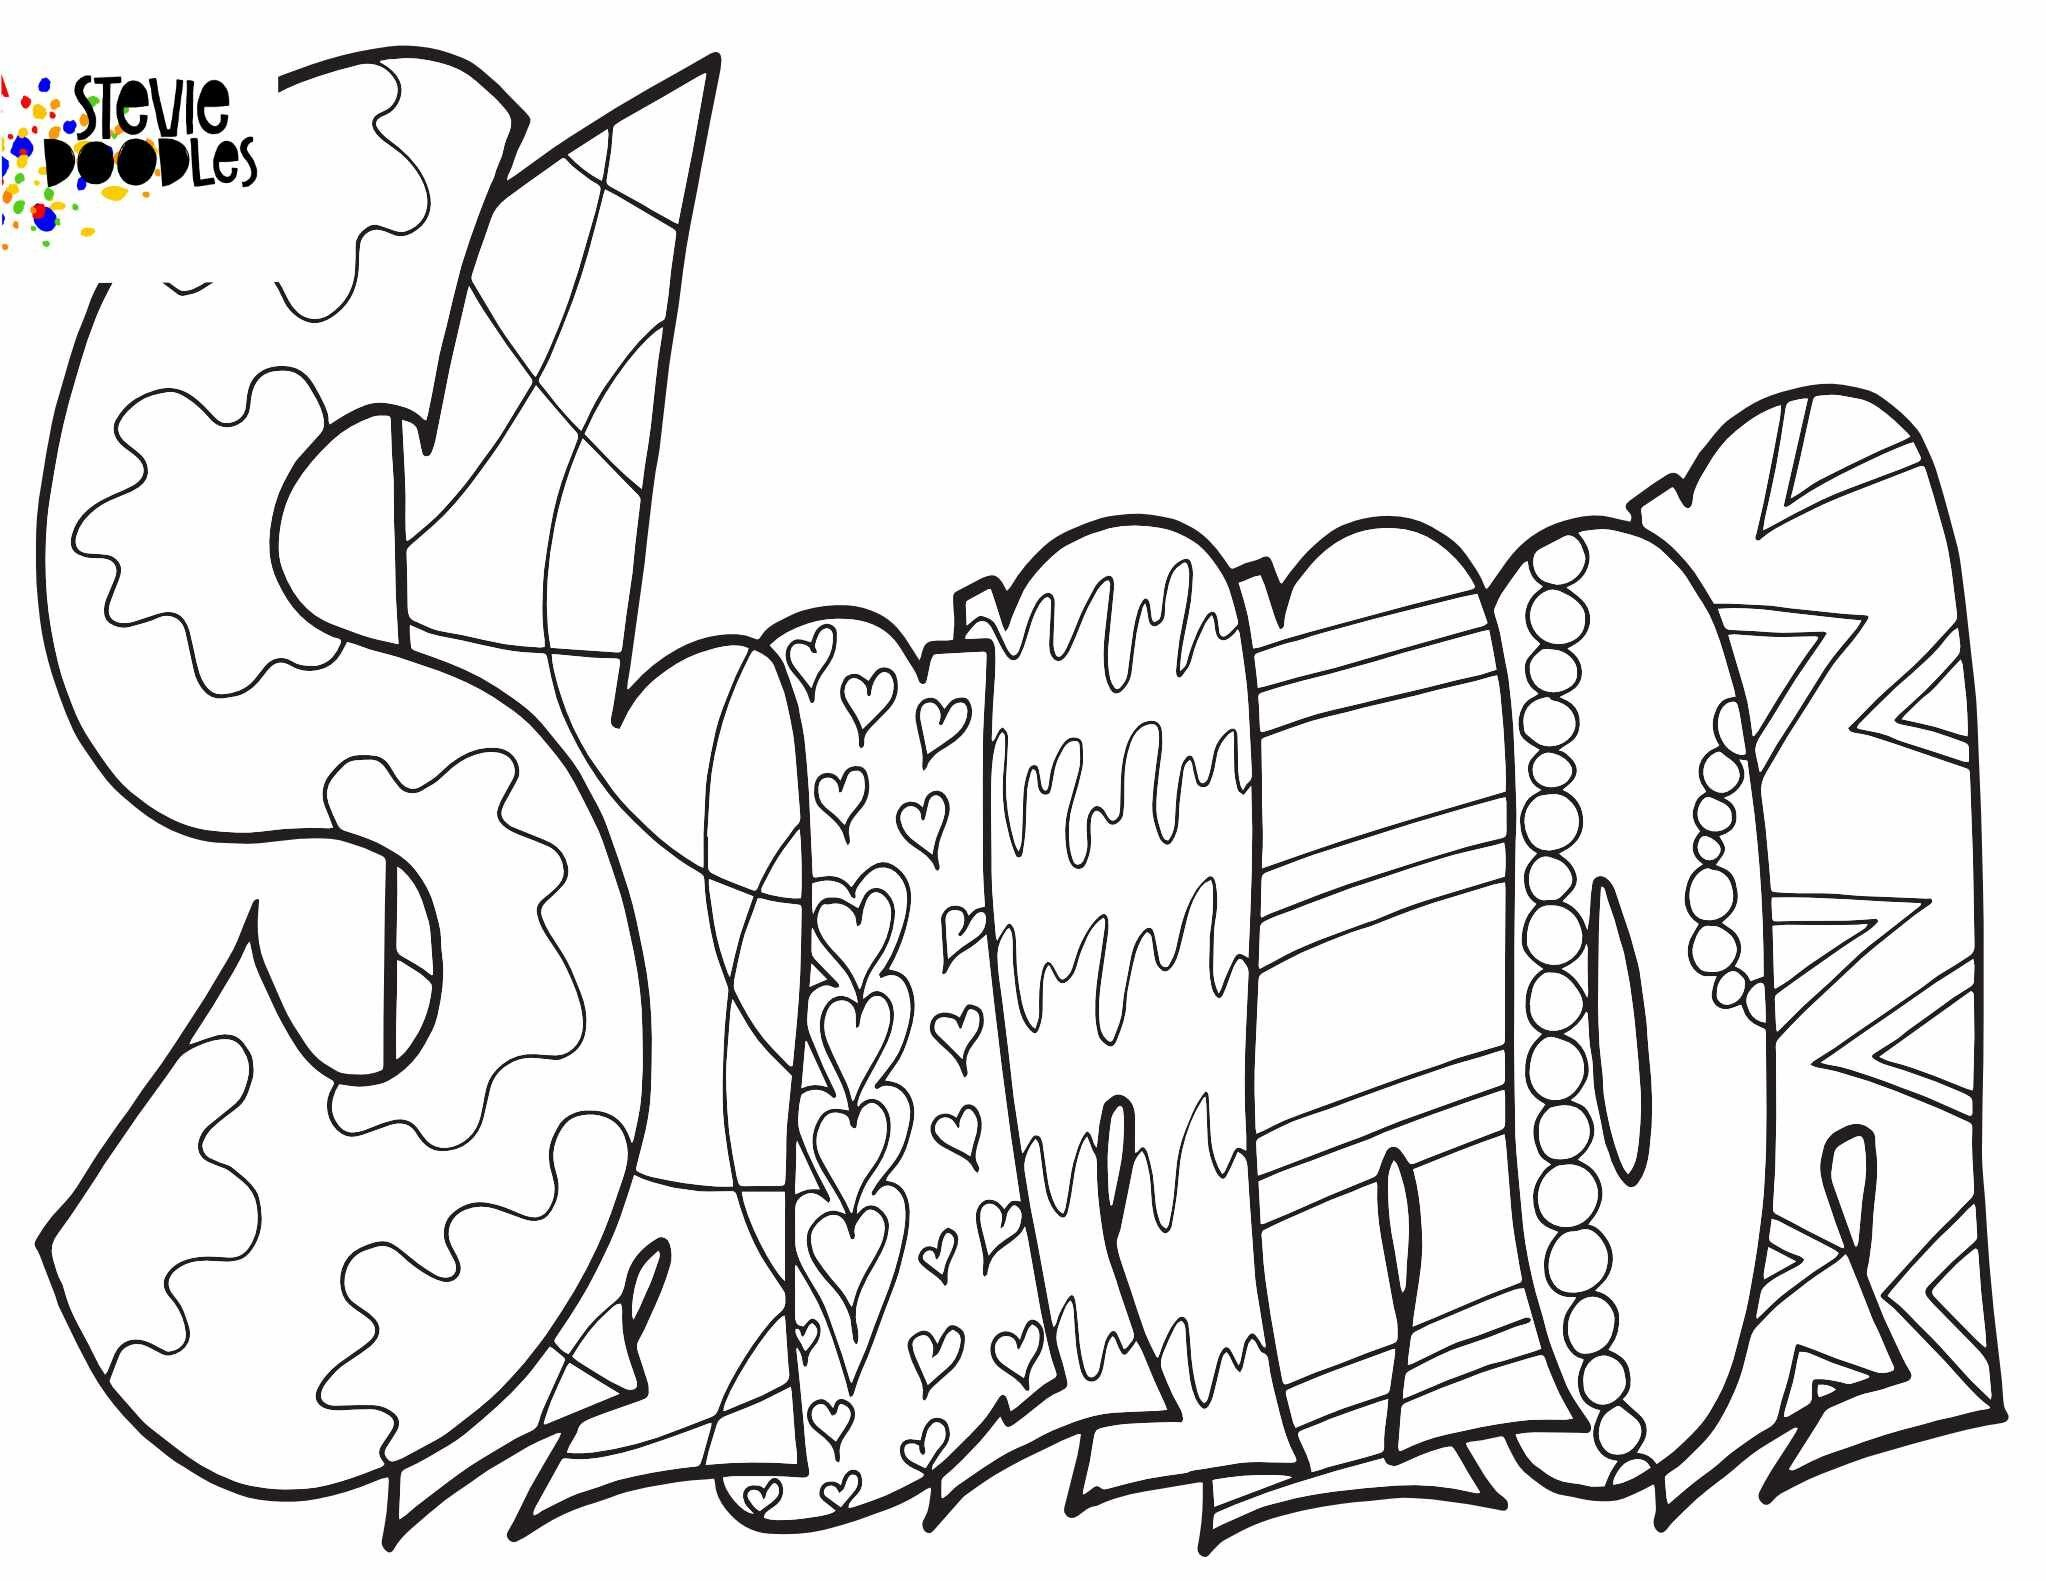 Shannon Free Printable Coloring Page Stevie Doodles Coloring Pages Free Printable Coloring Pages Free Coloring Pages